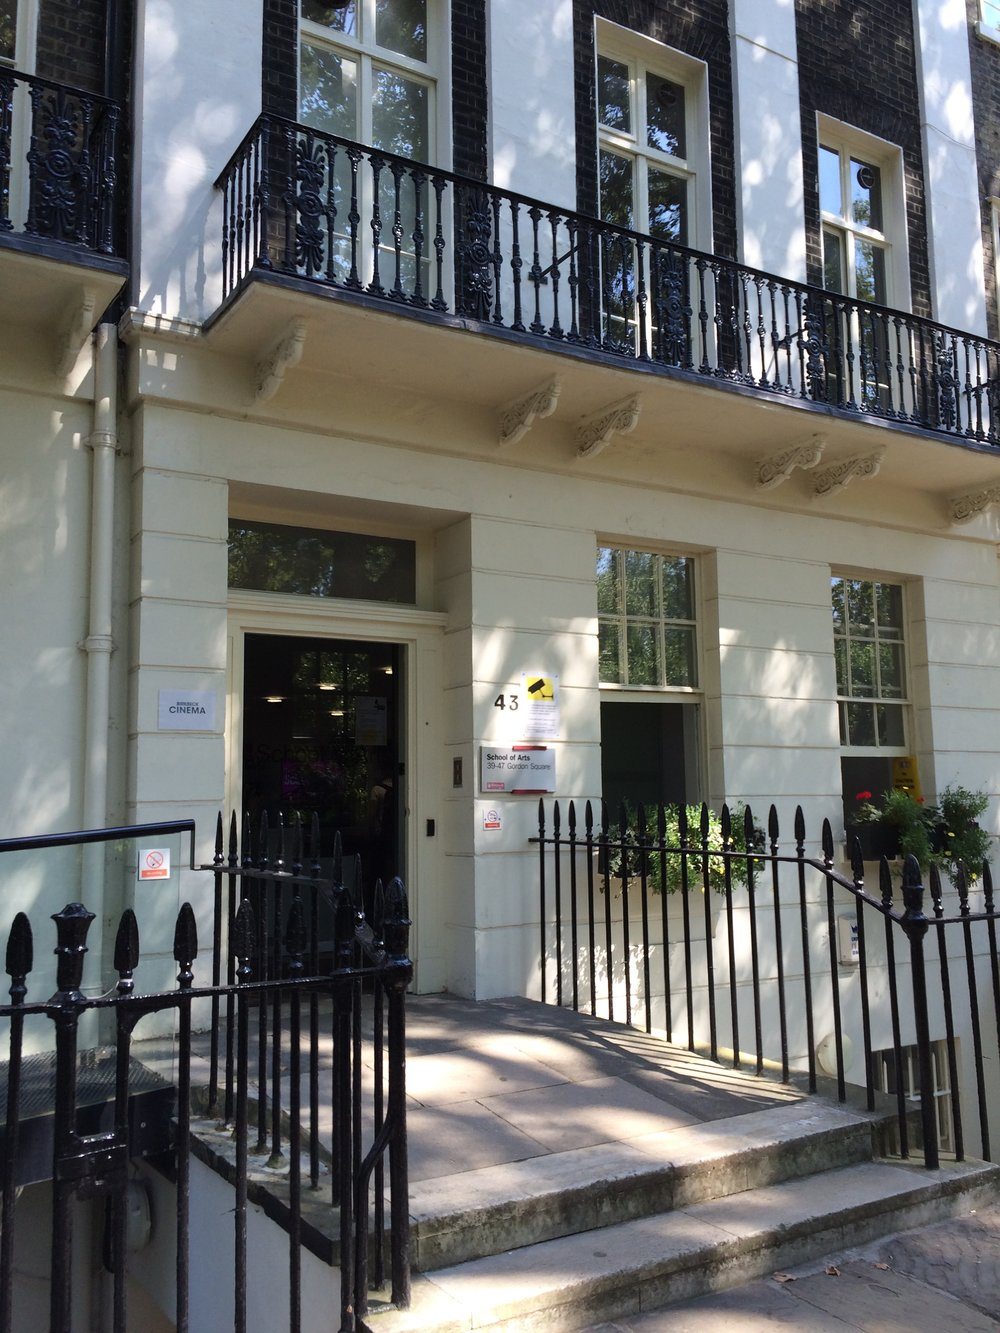 School of Arts, 43 Gordon Square in the heart of Bloomsbury